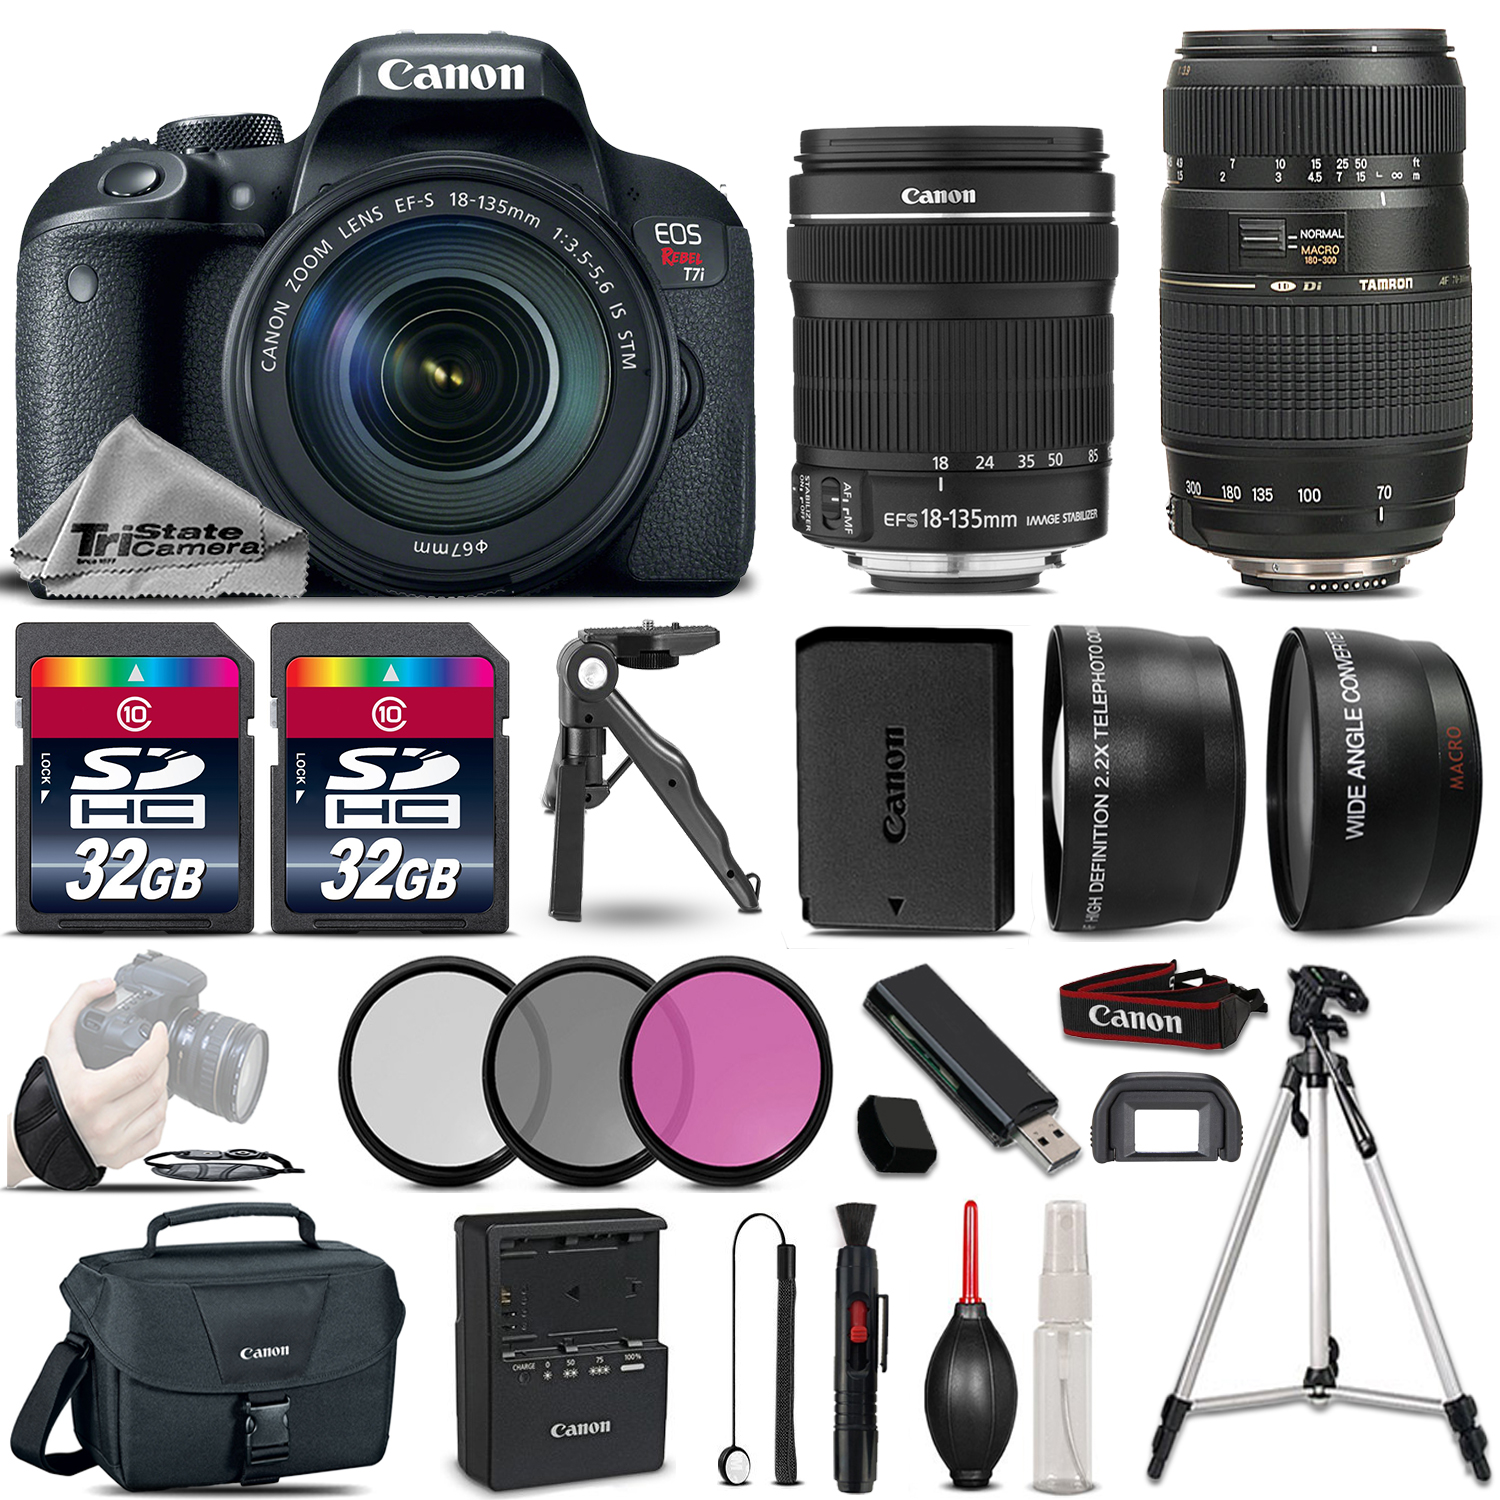 EOS Rebel T7i DSLR Camera w/ 18-135mm IS STM & 70-300mm Lens Bundle *FREE SHIPPING*